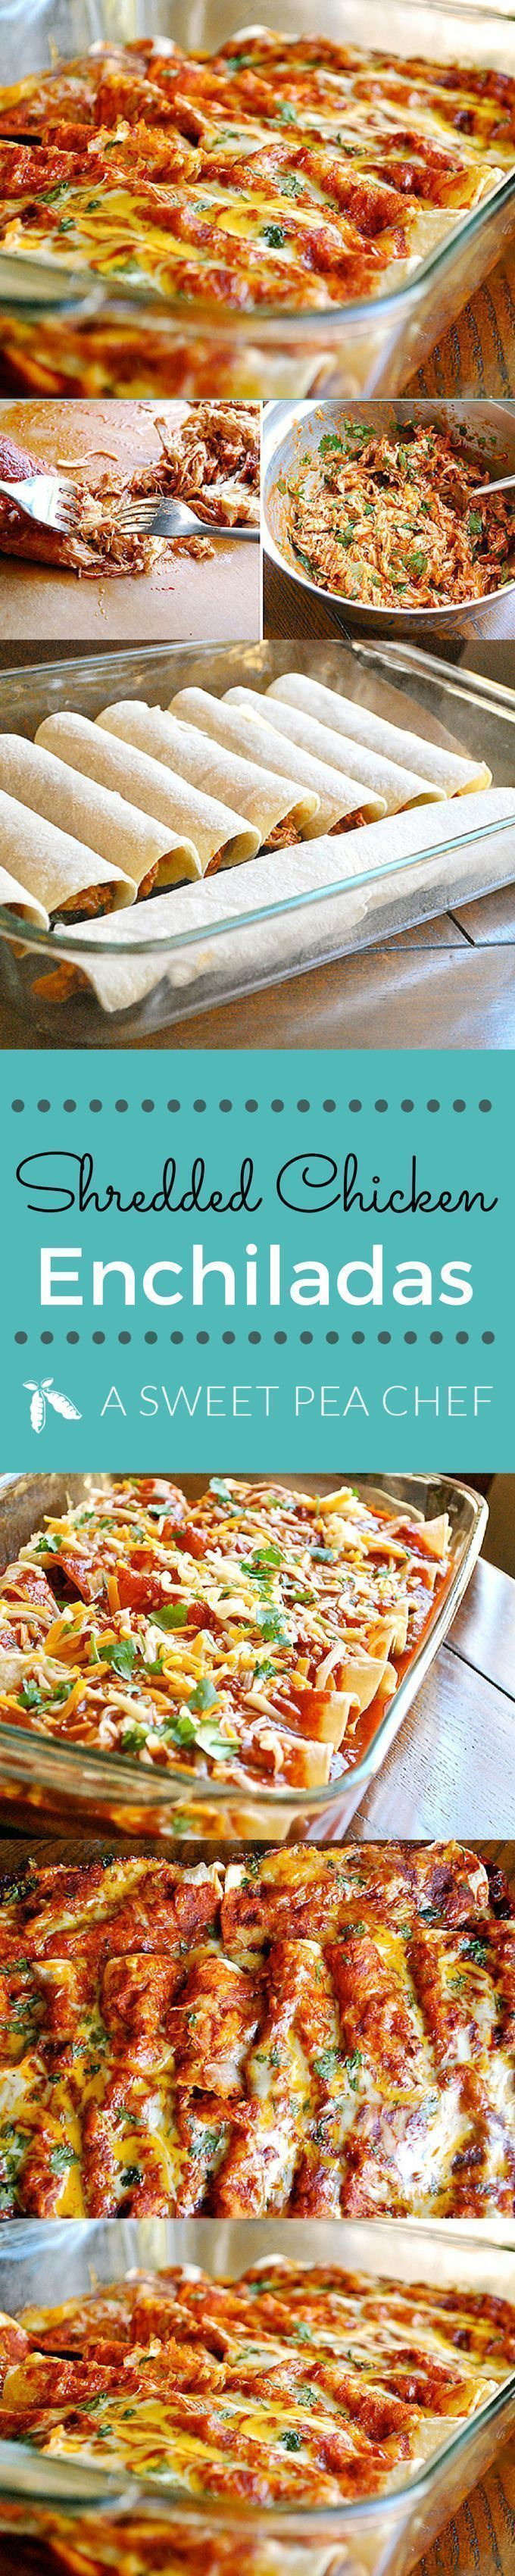 Shredded Chicken Enchiladas great dinner best chicken enchiladas   Lacey Baier www.asweetpeachef.com